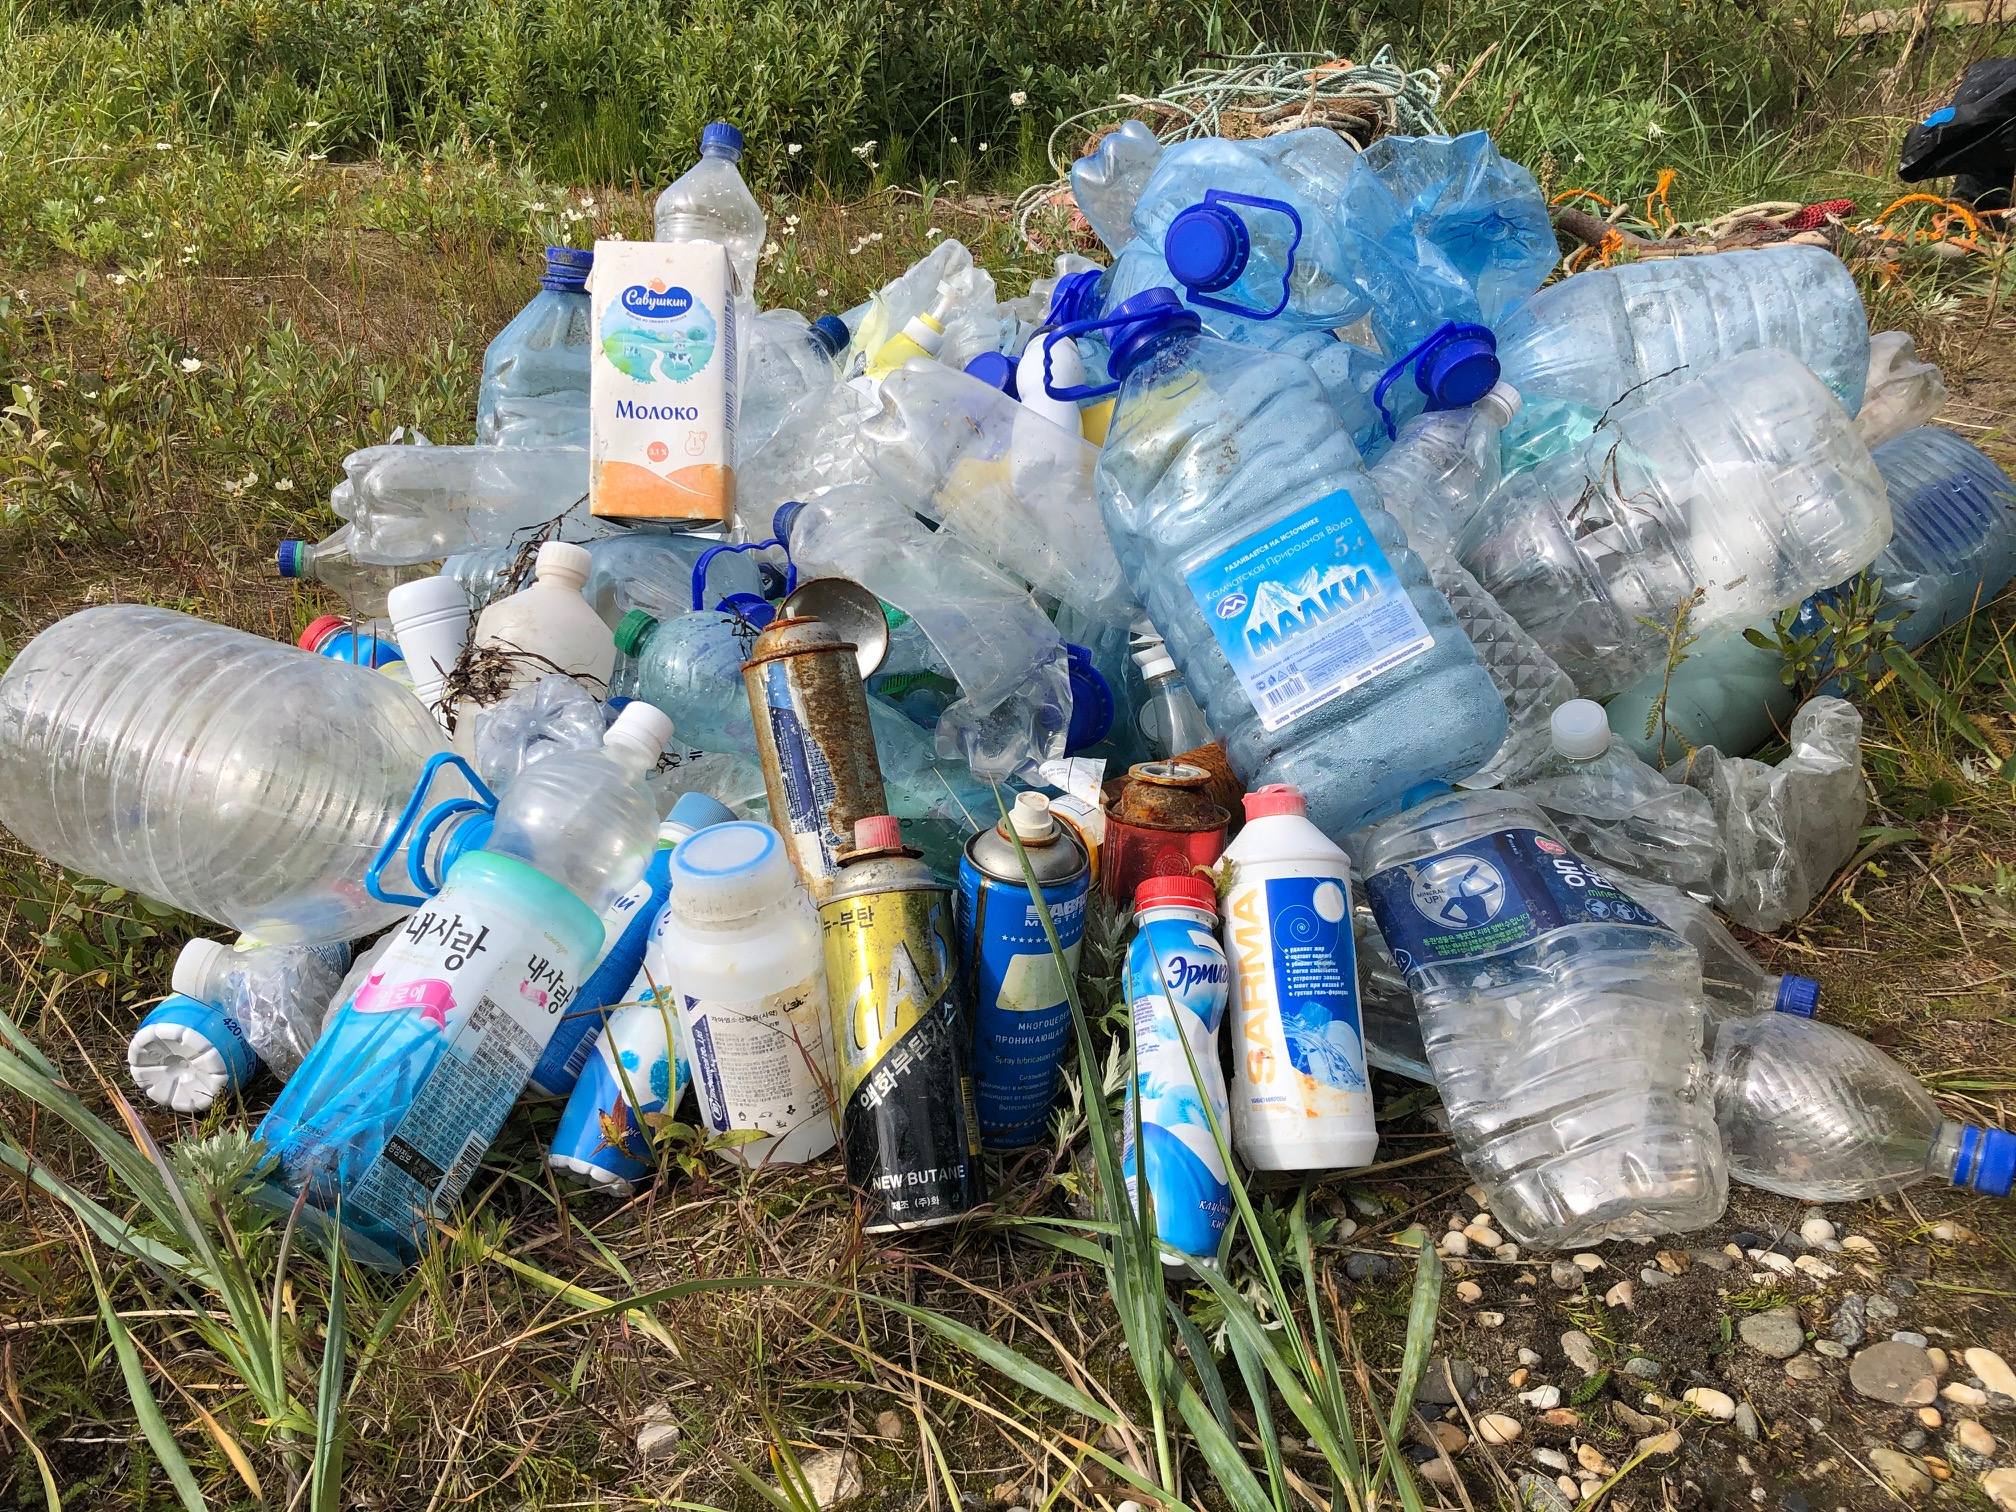 Mysterious waves of marine trash, much of it Russian, wash ashore on Alaska's Bering Strait beaches - ArcticToday